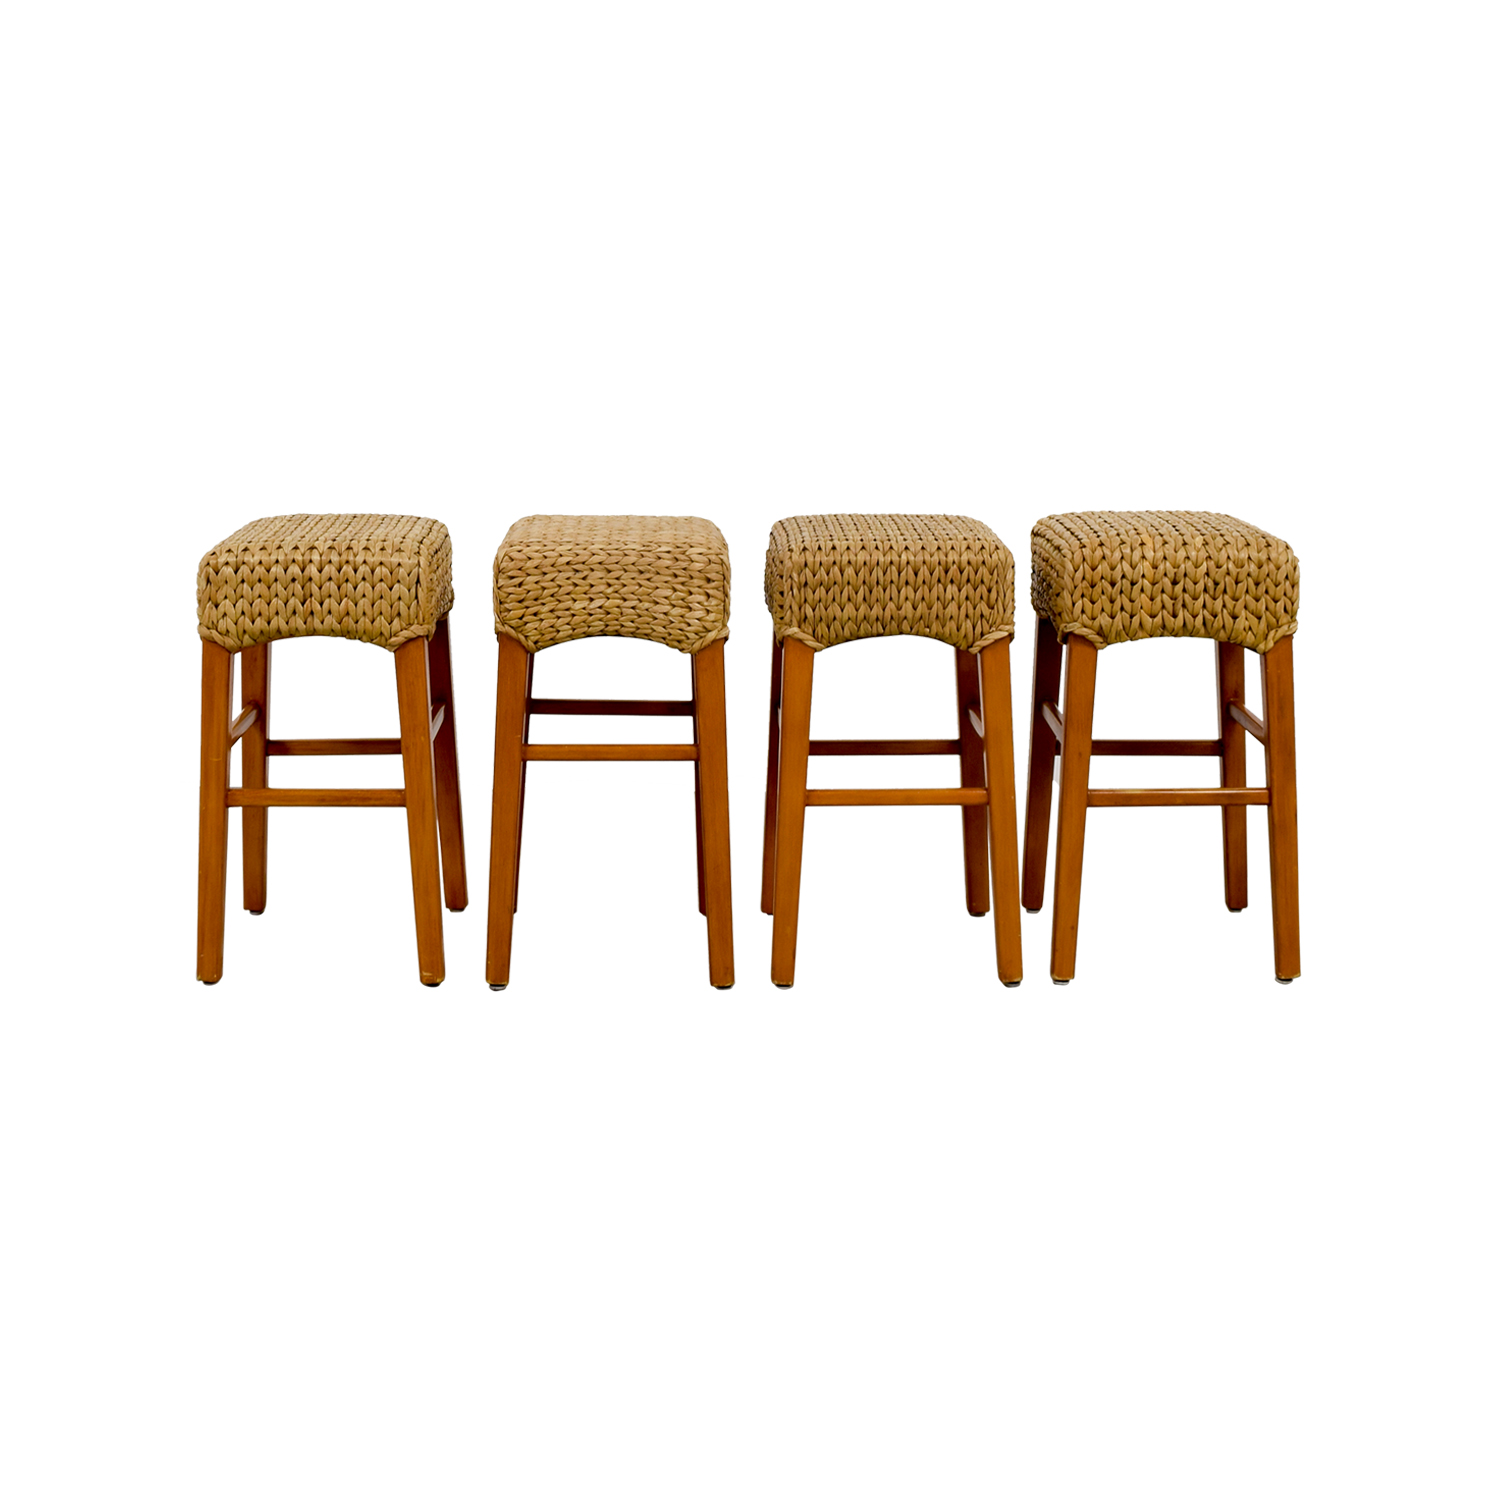 Bar Stools And High Table, 90 Off Pottery Barn Pottery Barn Sea Grass Stools Chairs